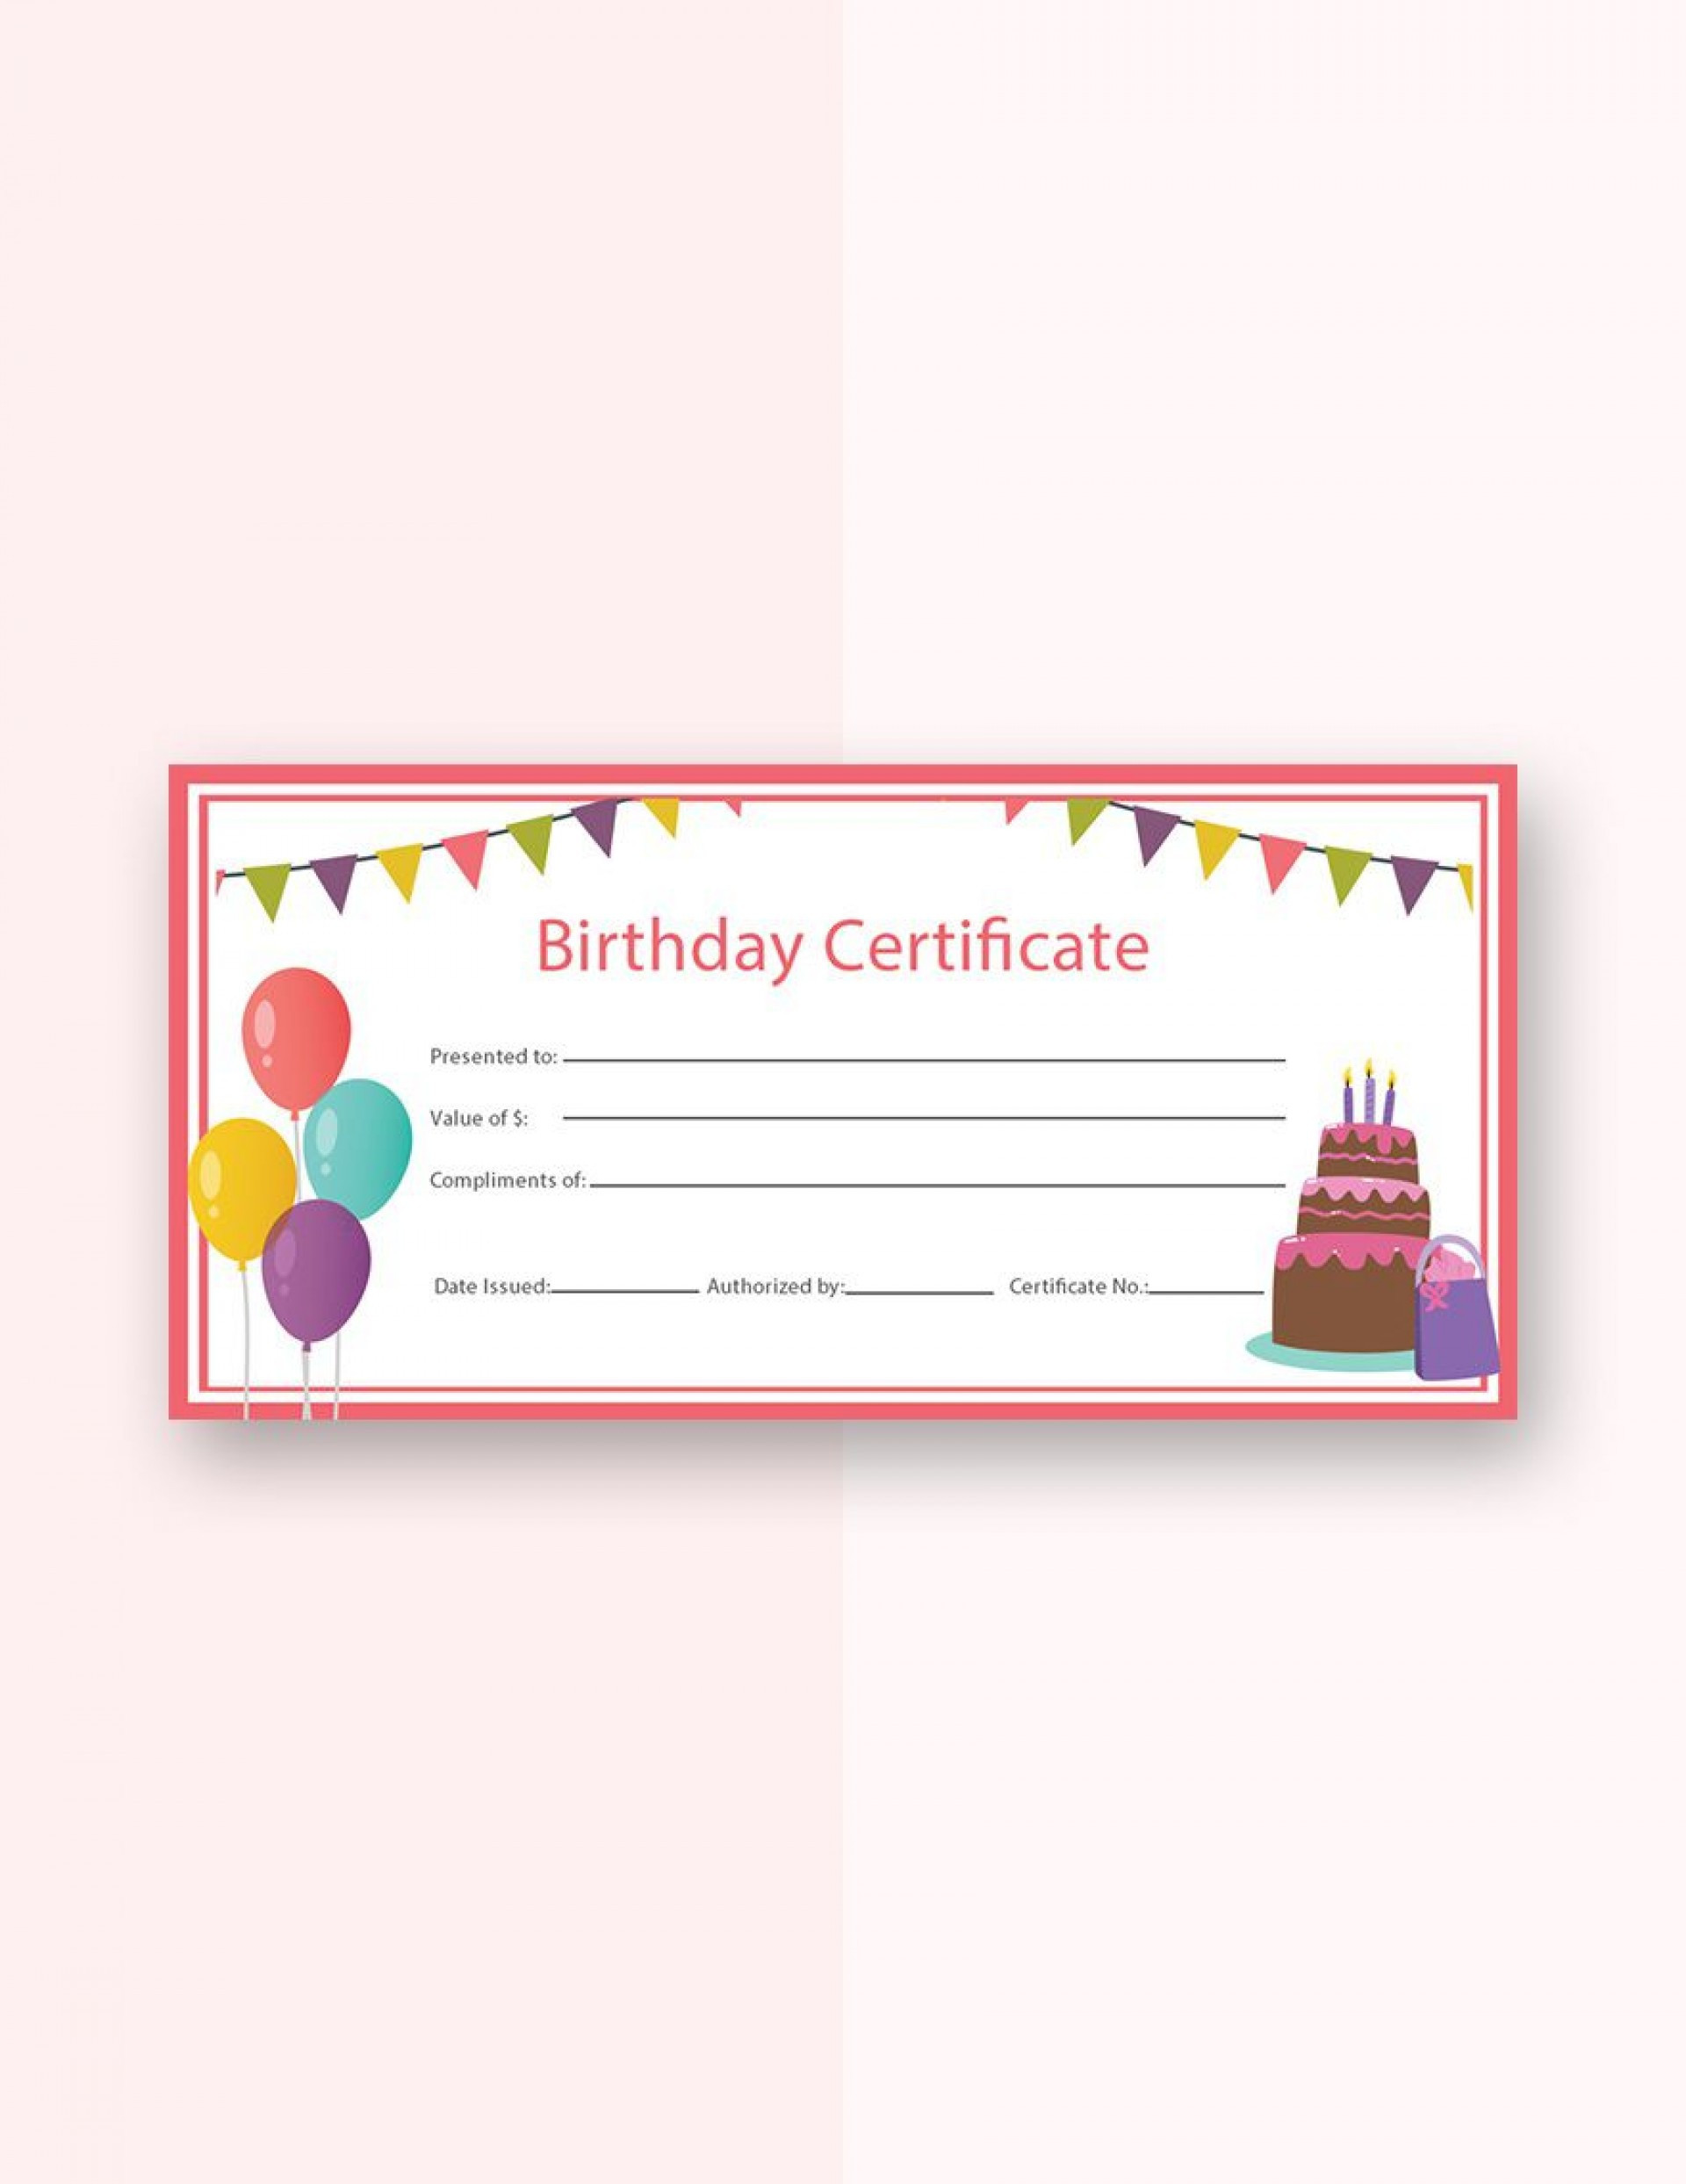 Free Gift Certificate Template Addictionary